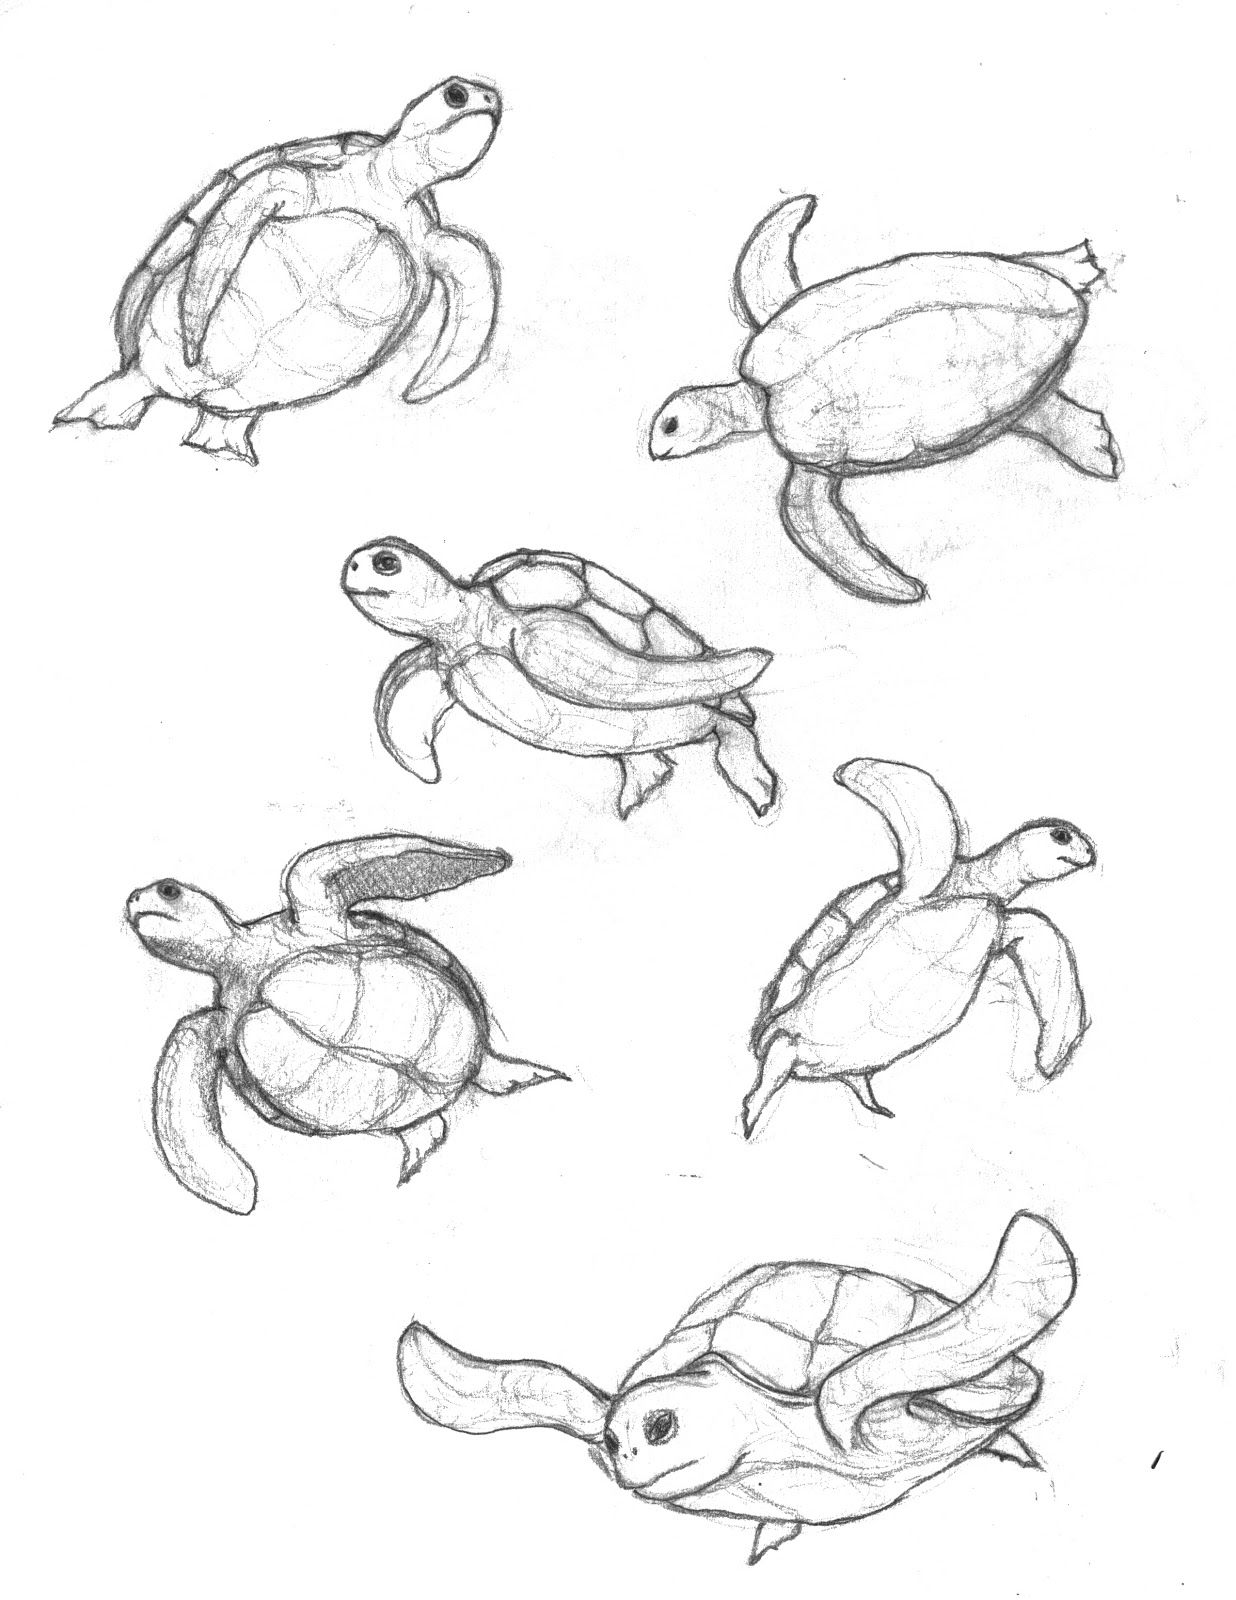 Turtle Sketch Related Simple Sea Turtle Drawing Tribal Sea Turtle